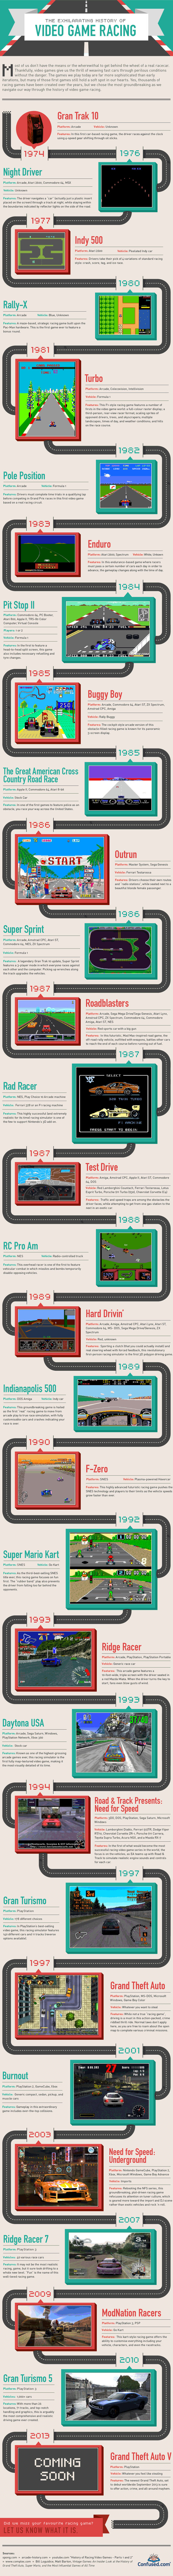 31 Racing Video Games Since 1974 (infographic)